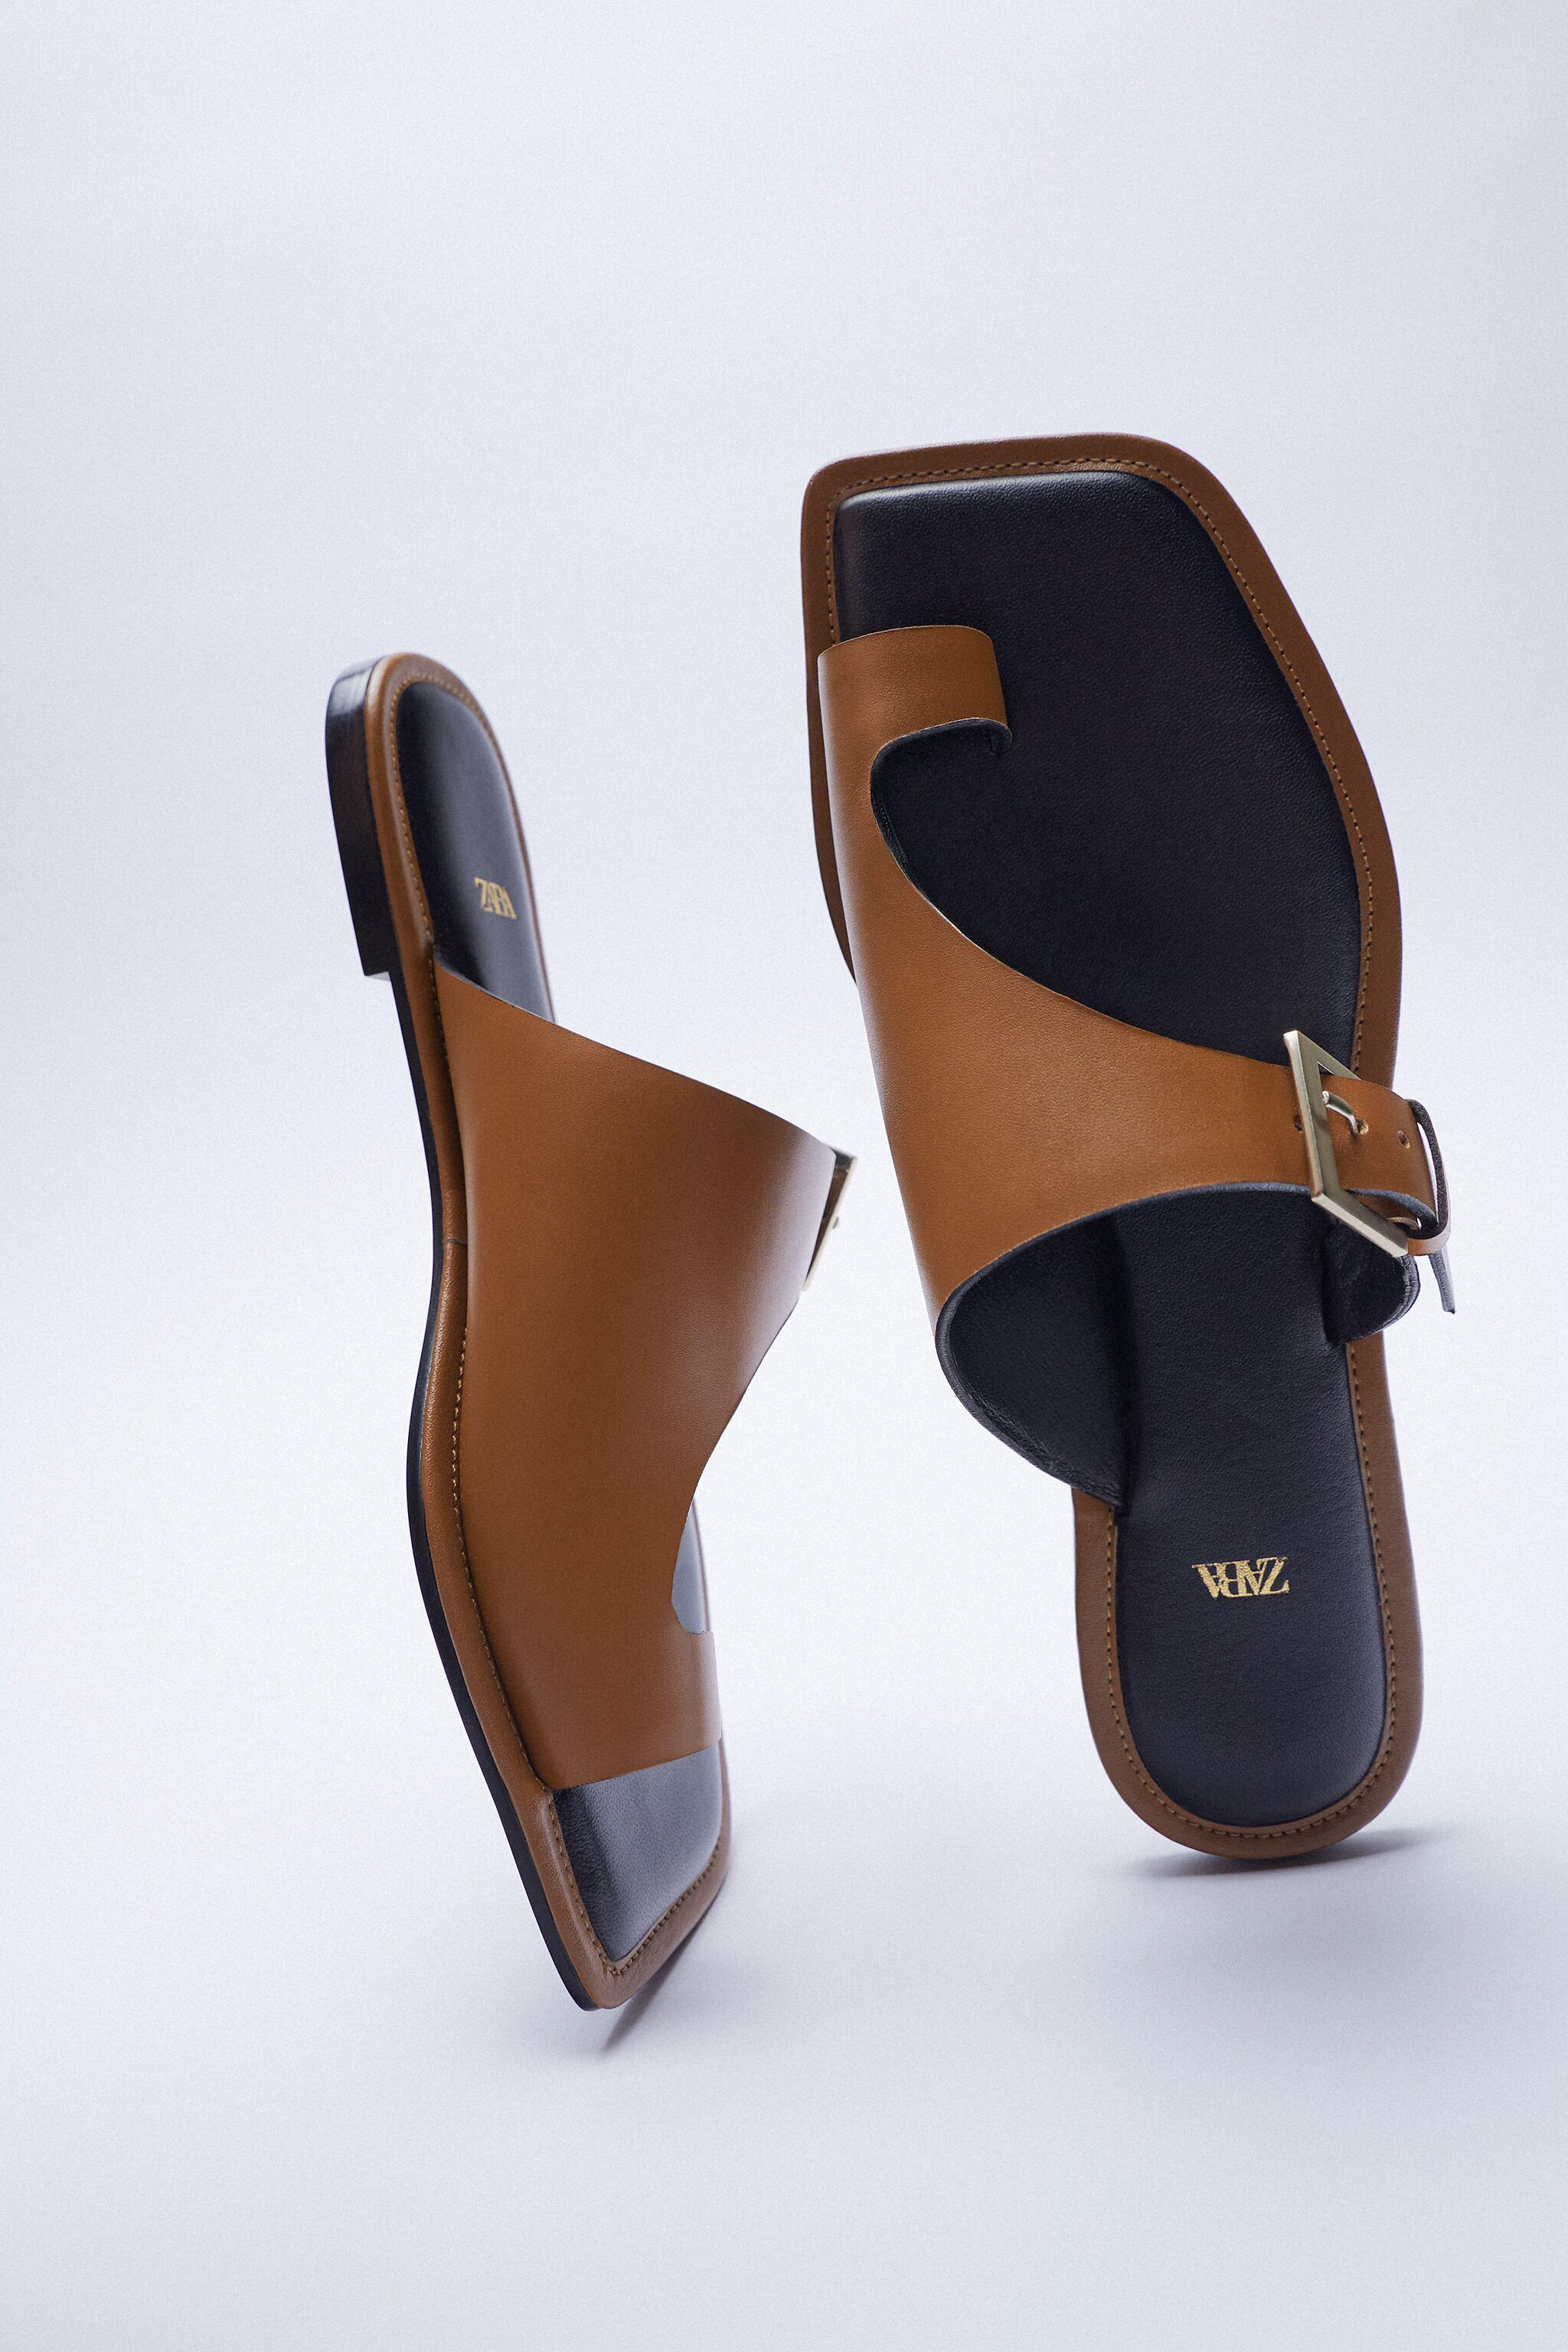 ASYMMETRICAL LEATHER SLIDE SANDALS WITH BUCKLE 10